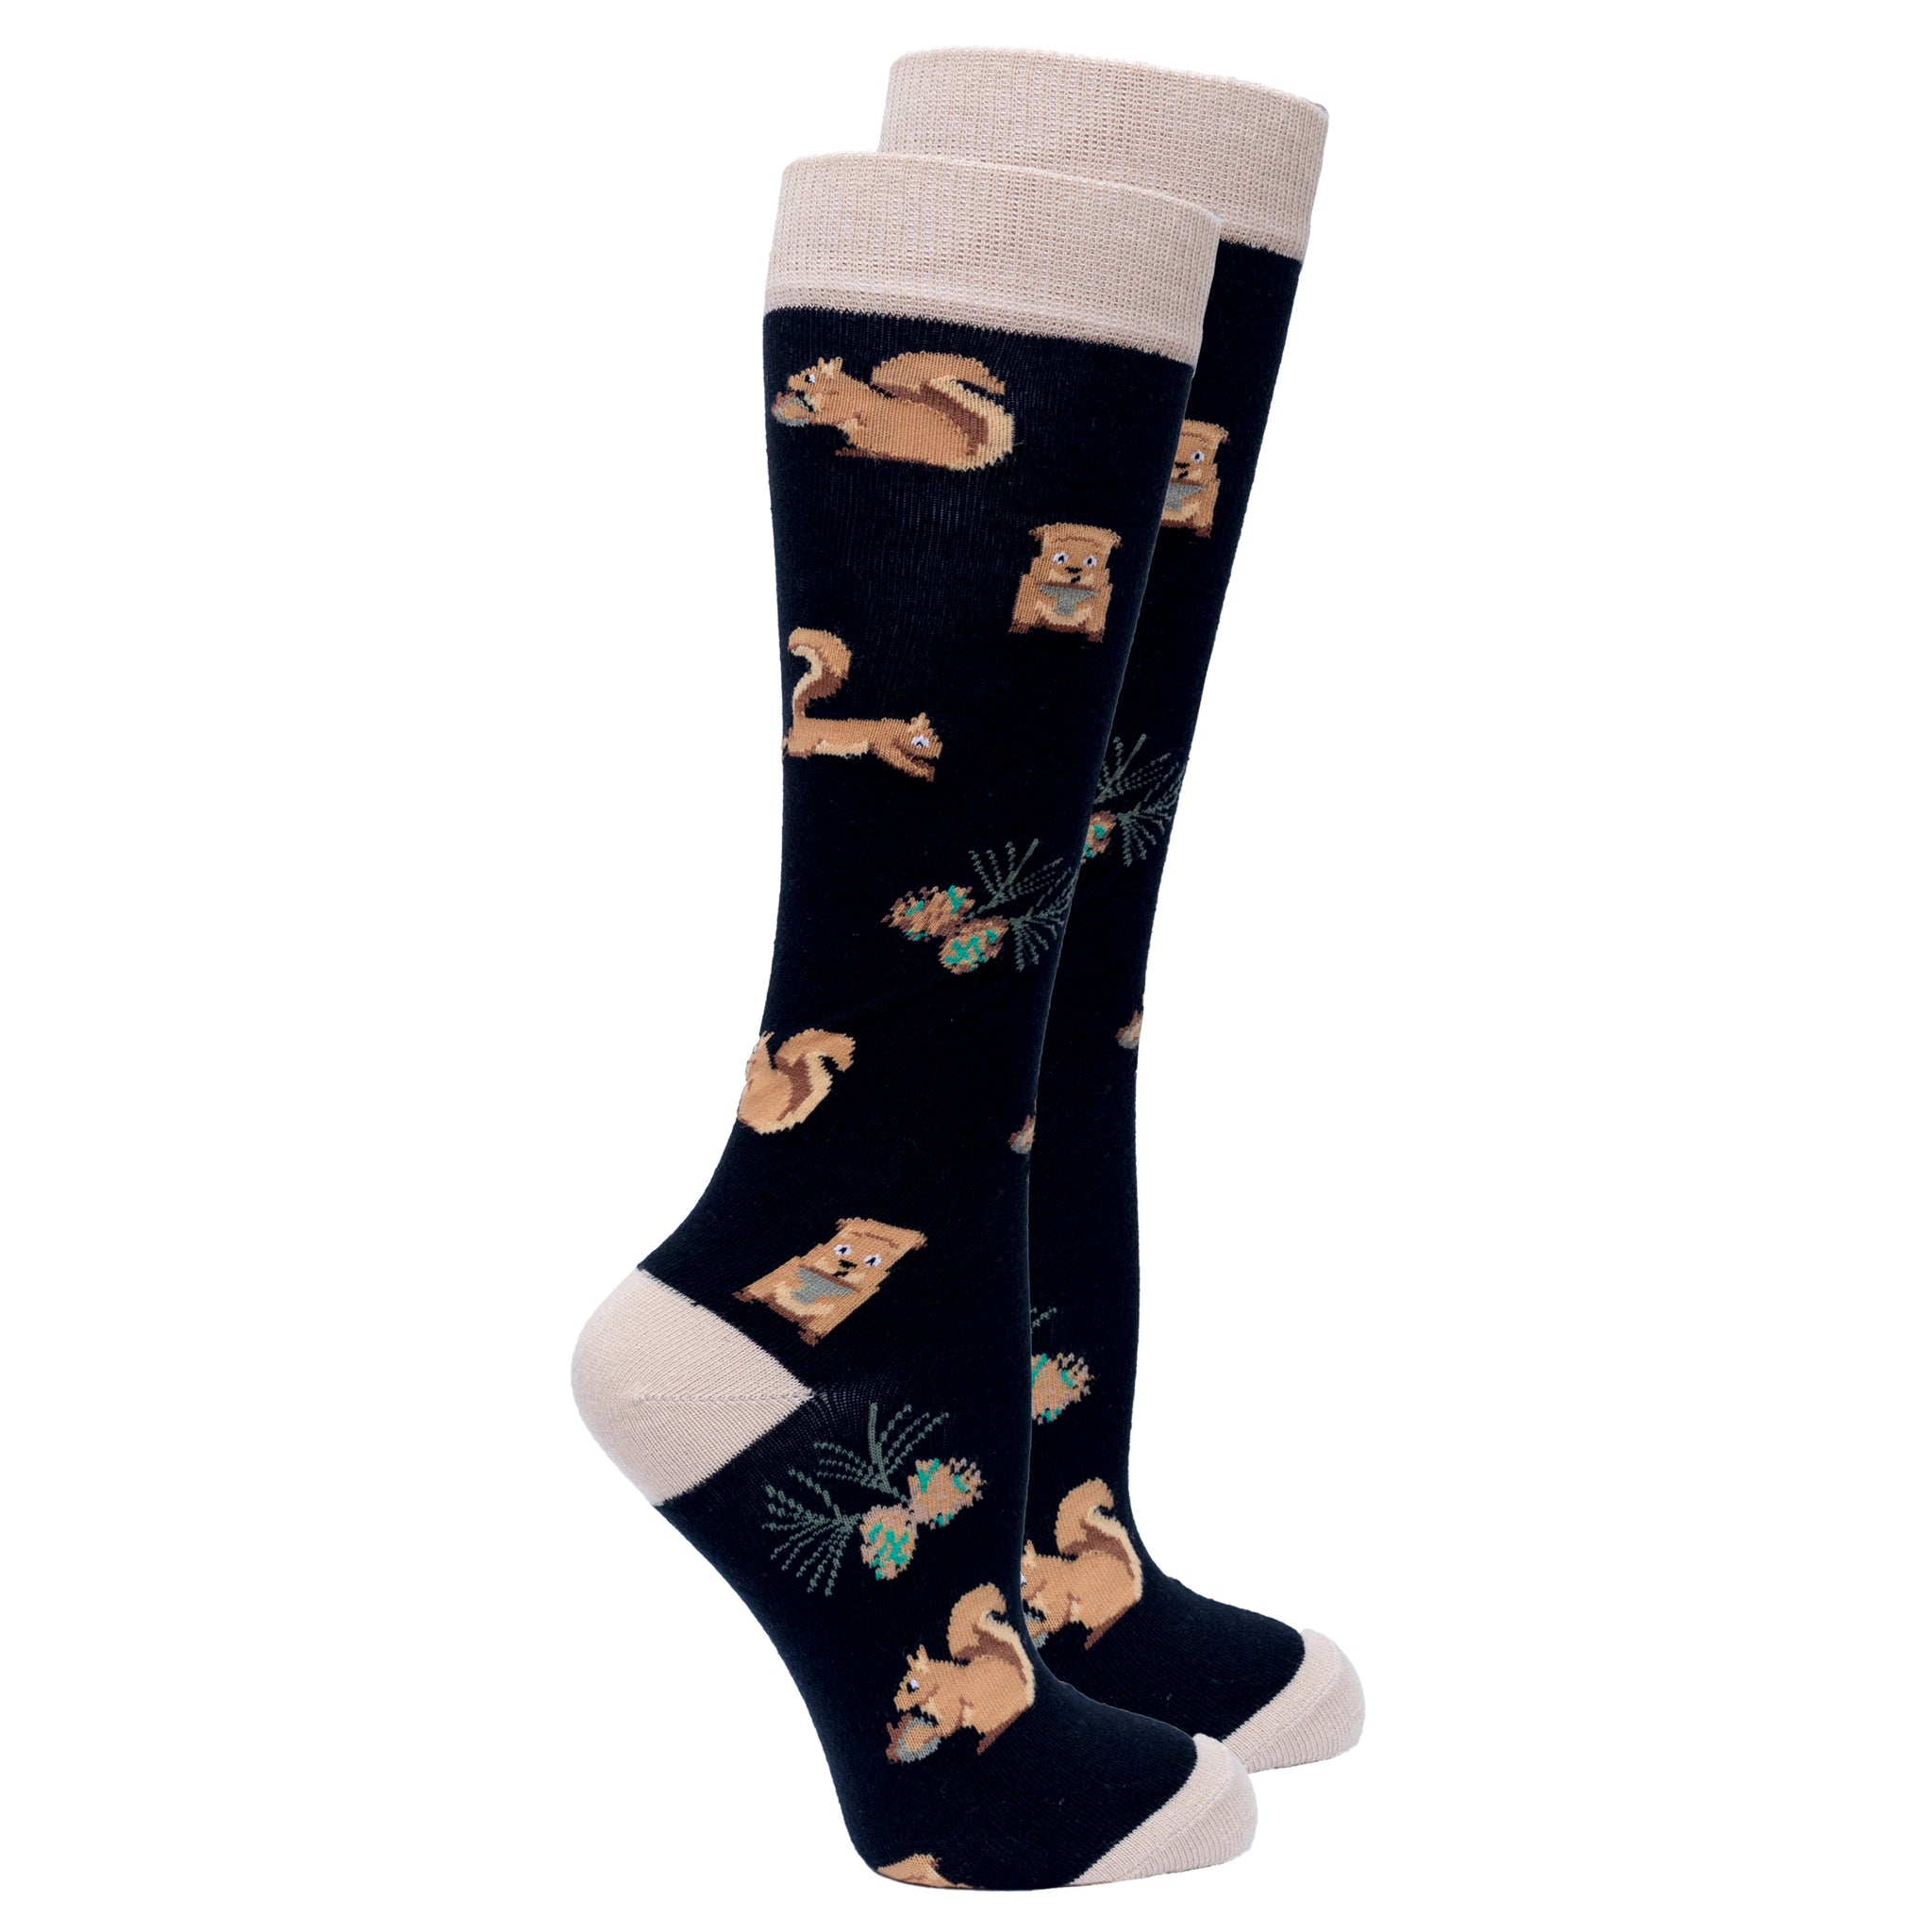 Women's Squirrel Knee High Socks